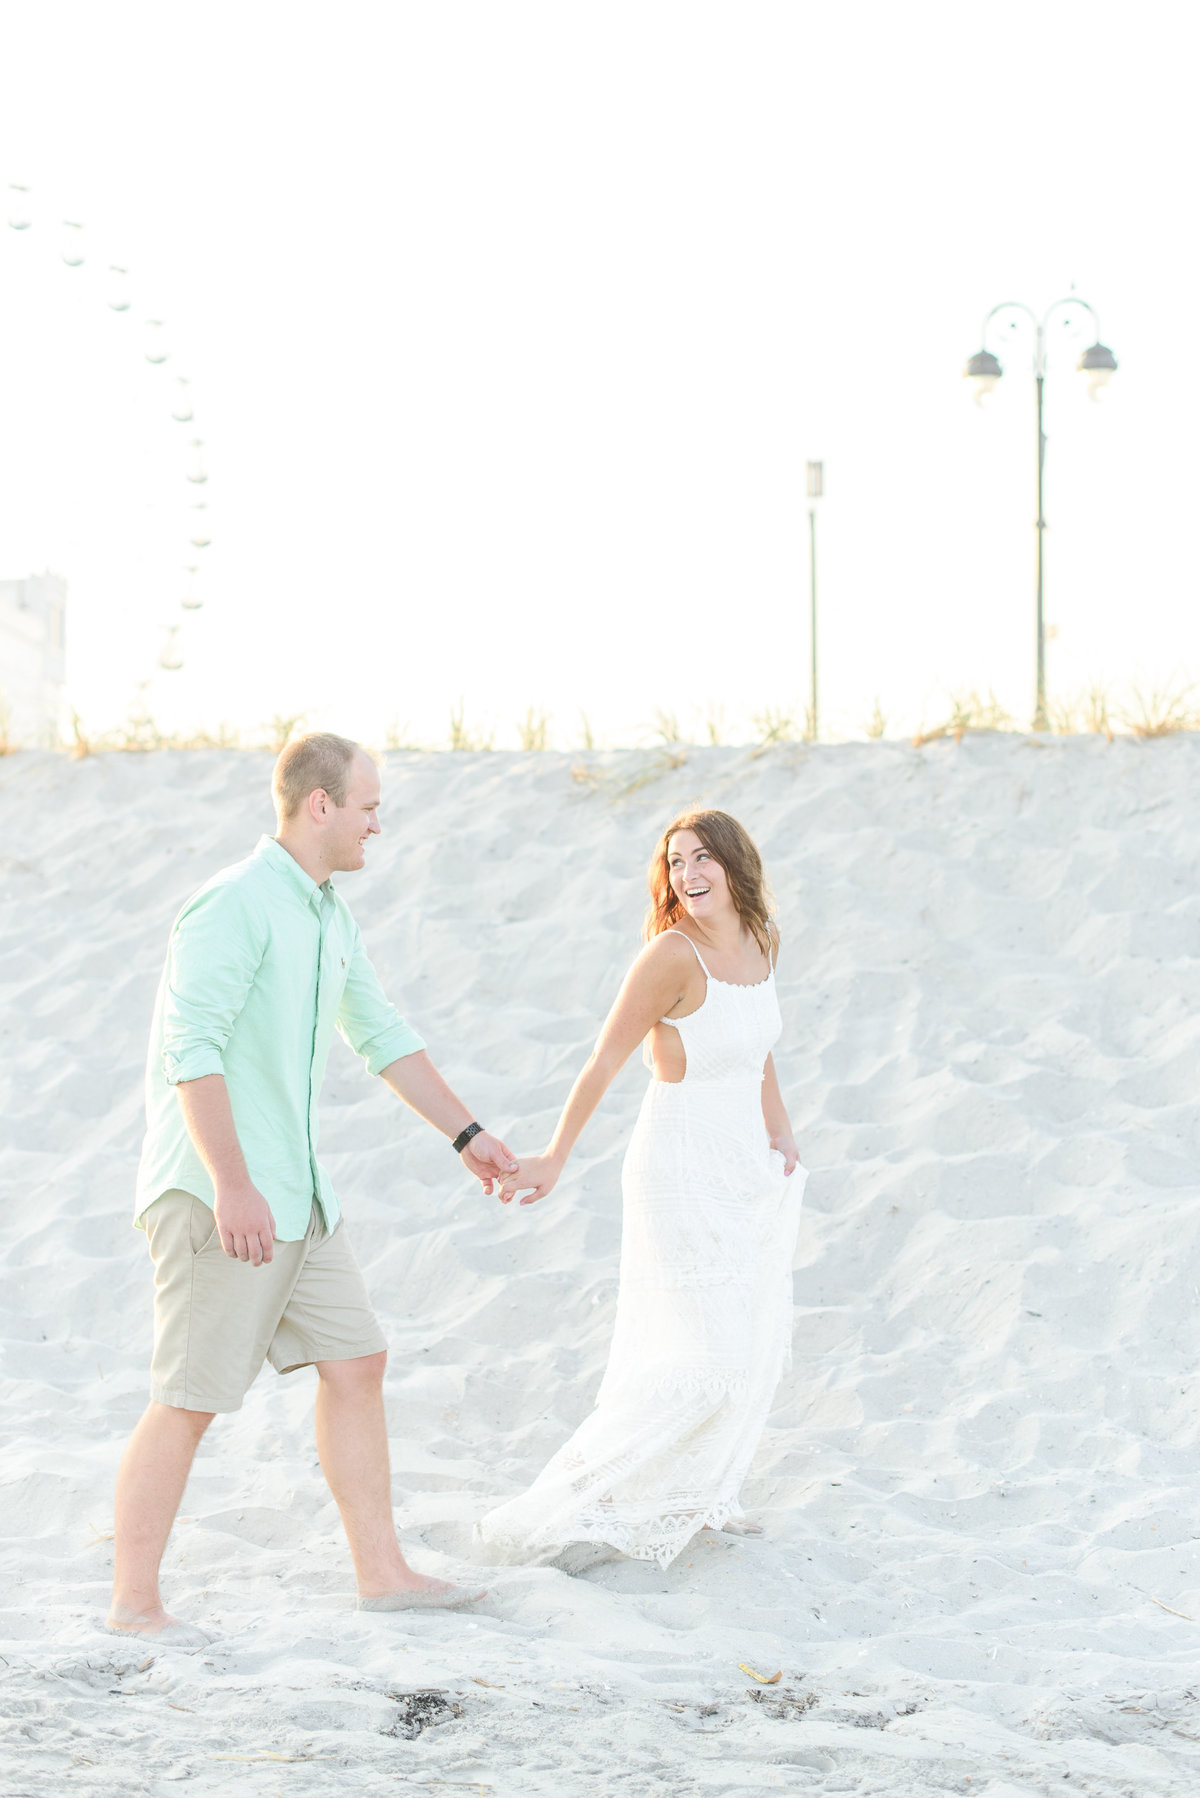 Olivia Rae Photography | Ocean City, NJ Engagement Session-177